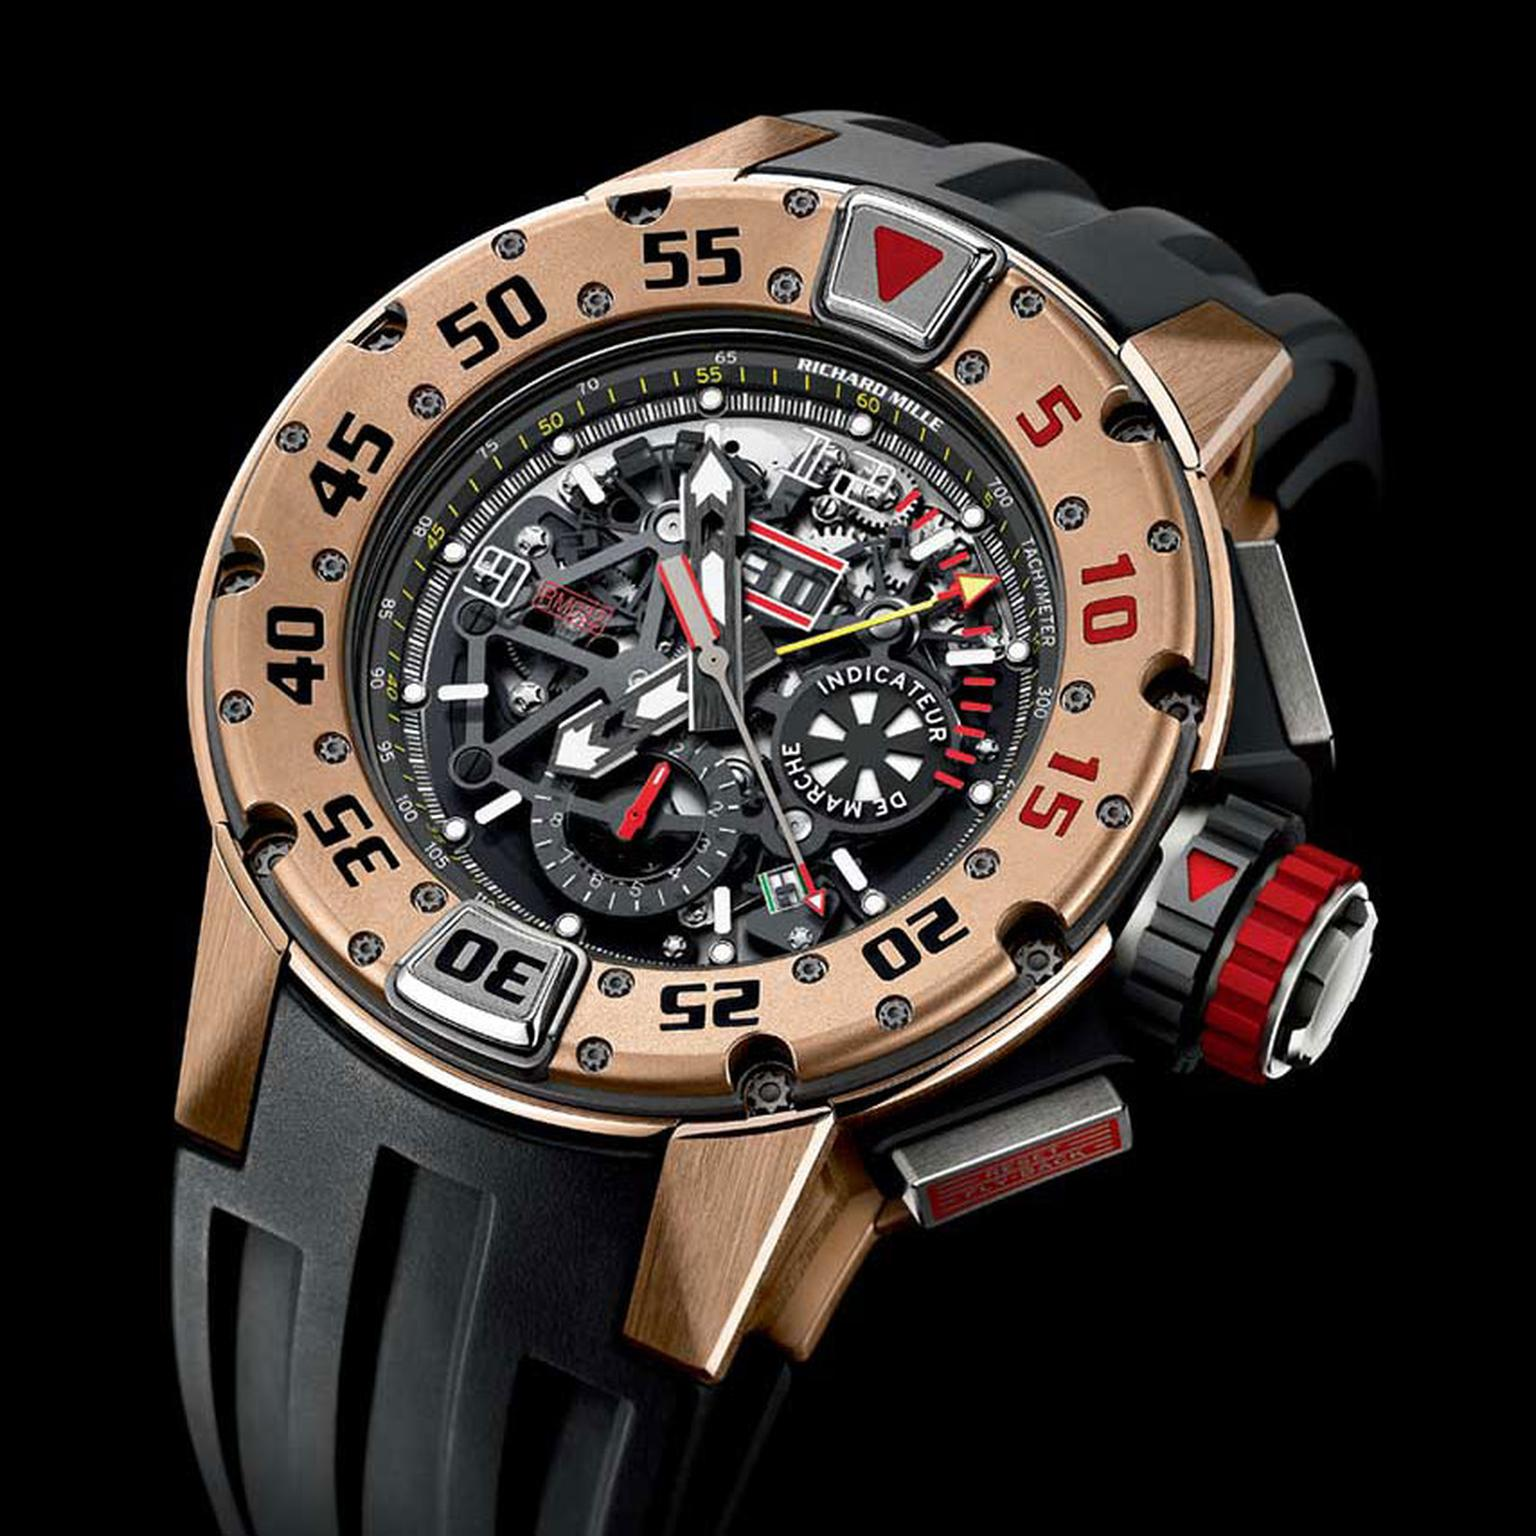 Richard Mille dive watch WS Theme square